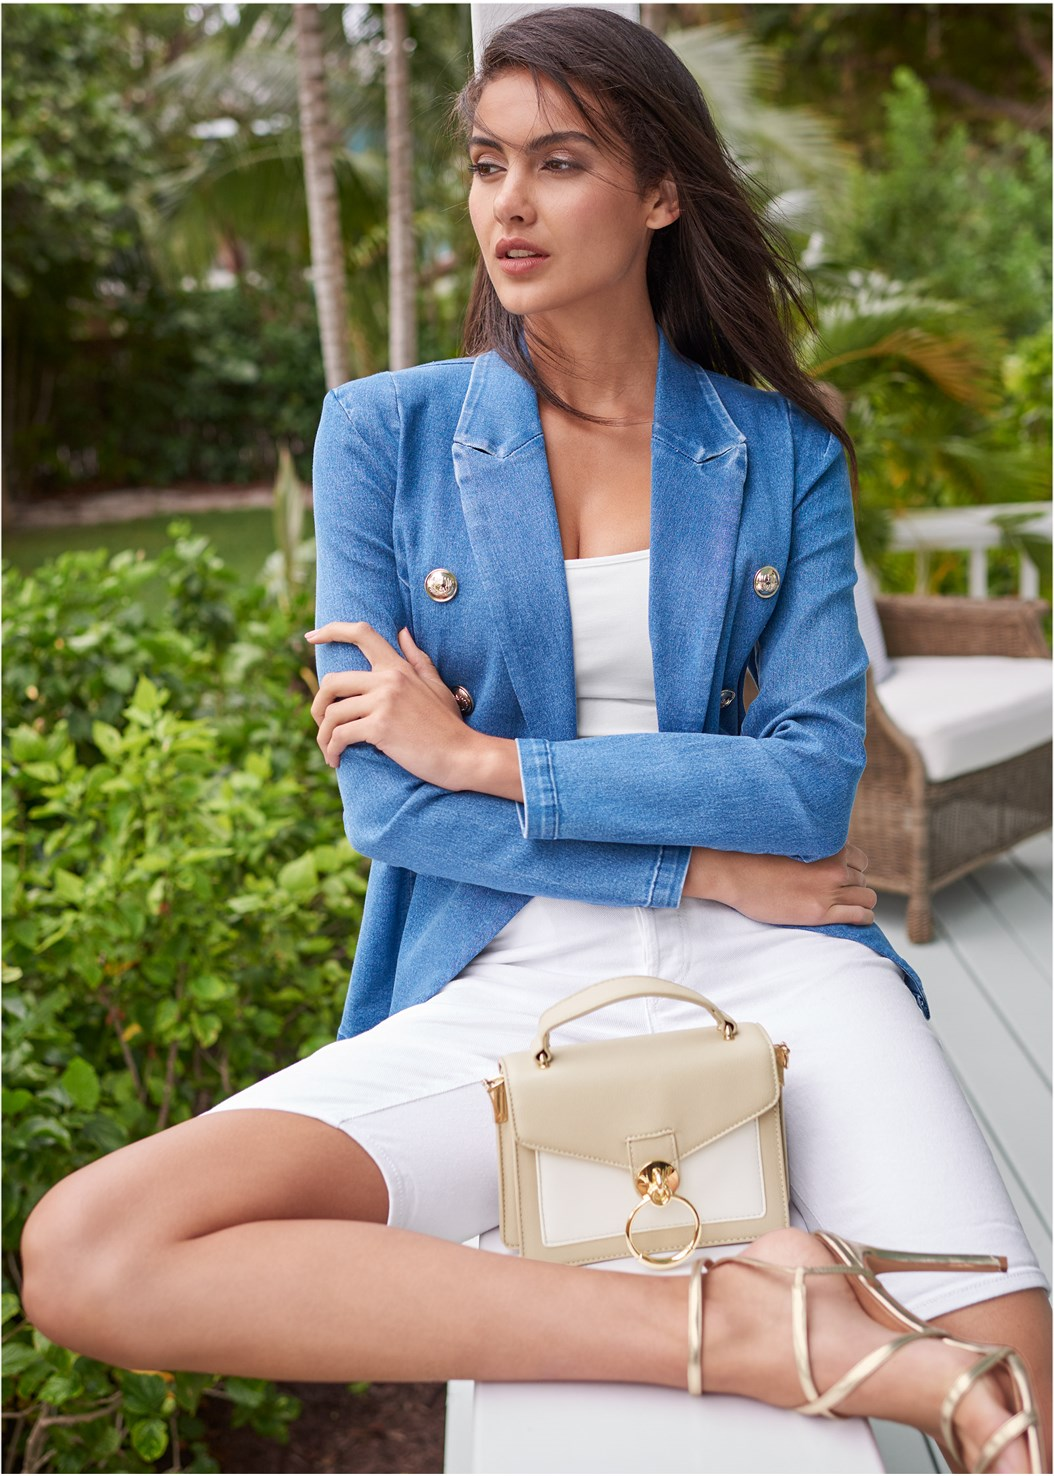 Denim Blazer,Basic Cami Two Pack,Jean Bermuda Short,Bum Lifter Jeans,Multi Strap Ankle Wrap Heel,High Heel Strappy Sandals,Two-Tone Crossbody Bag,Ring Handle Circle Clutch